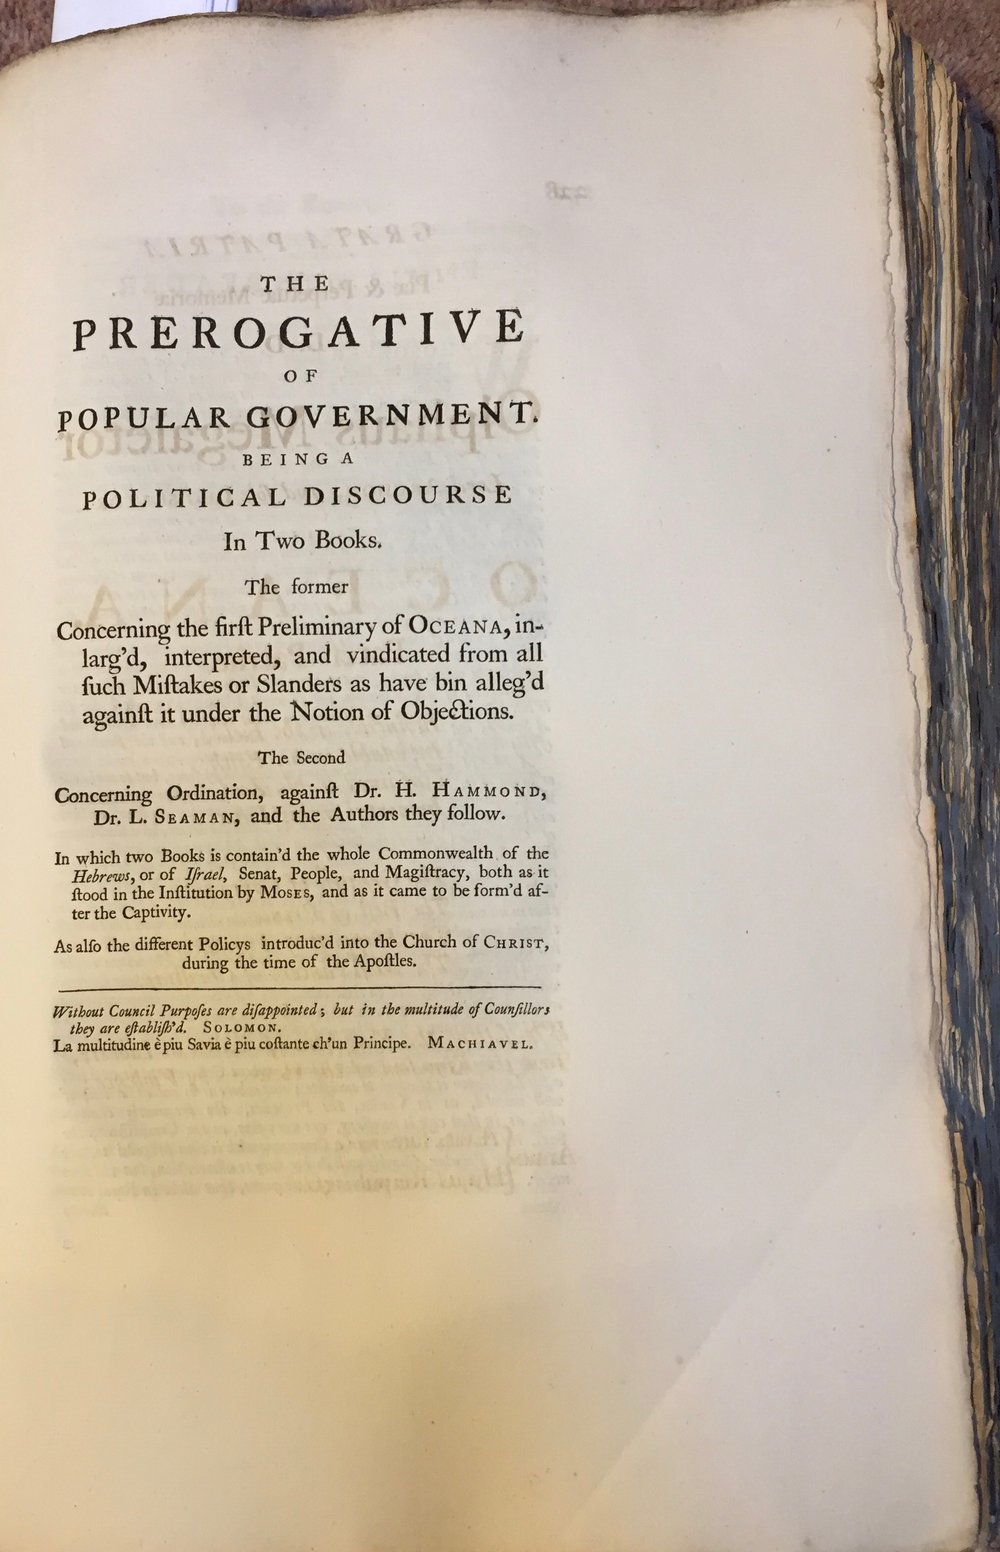 Title page to  The Prerogative of Popular Government  from  The Oceana and Other Works of James Harrington,  ed. John Toland (London, 1737). Private copy. Image by Rachel Hammersley.